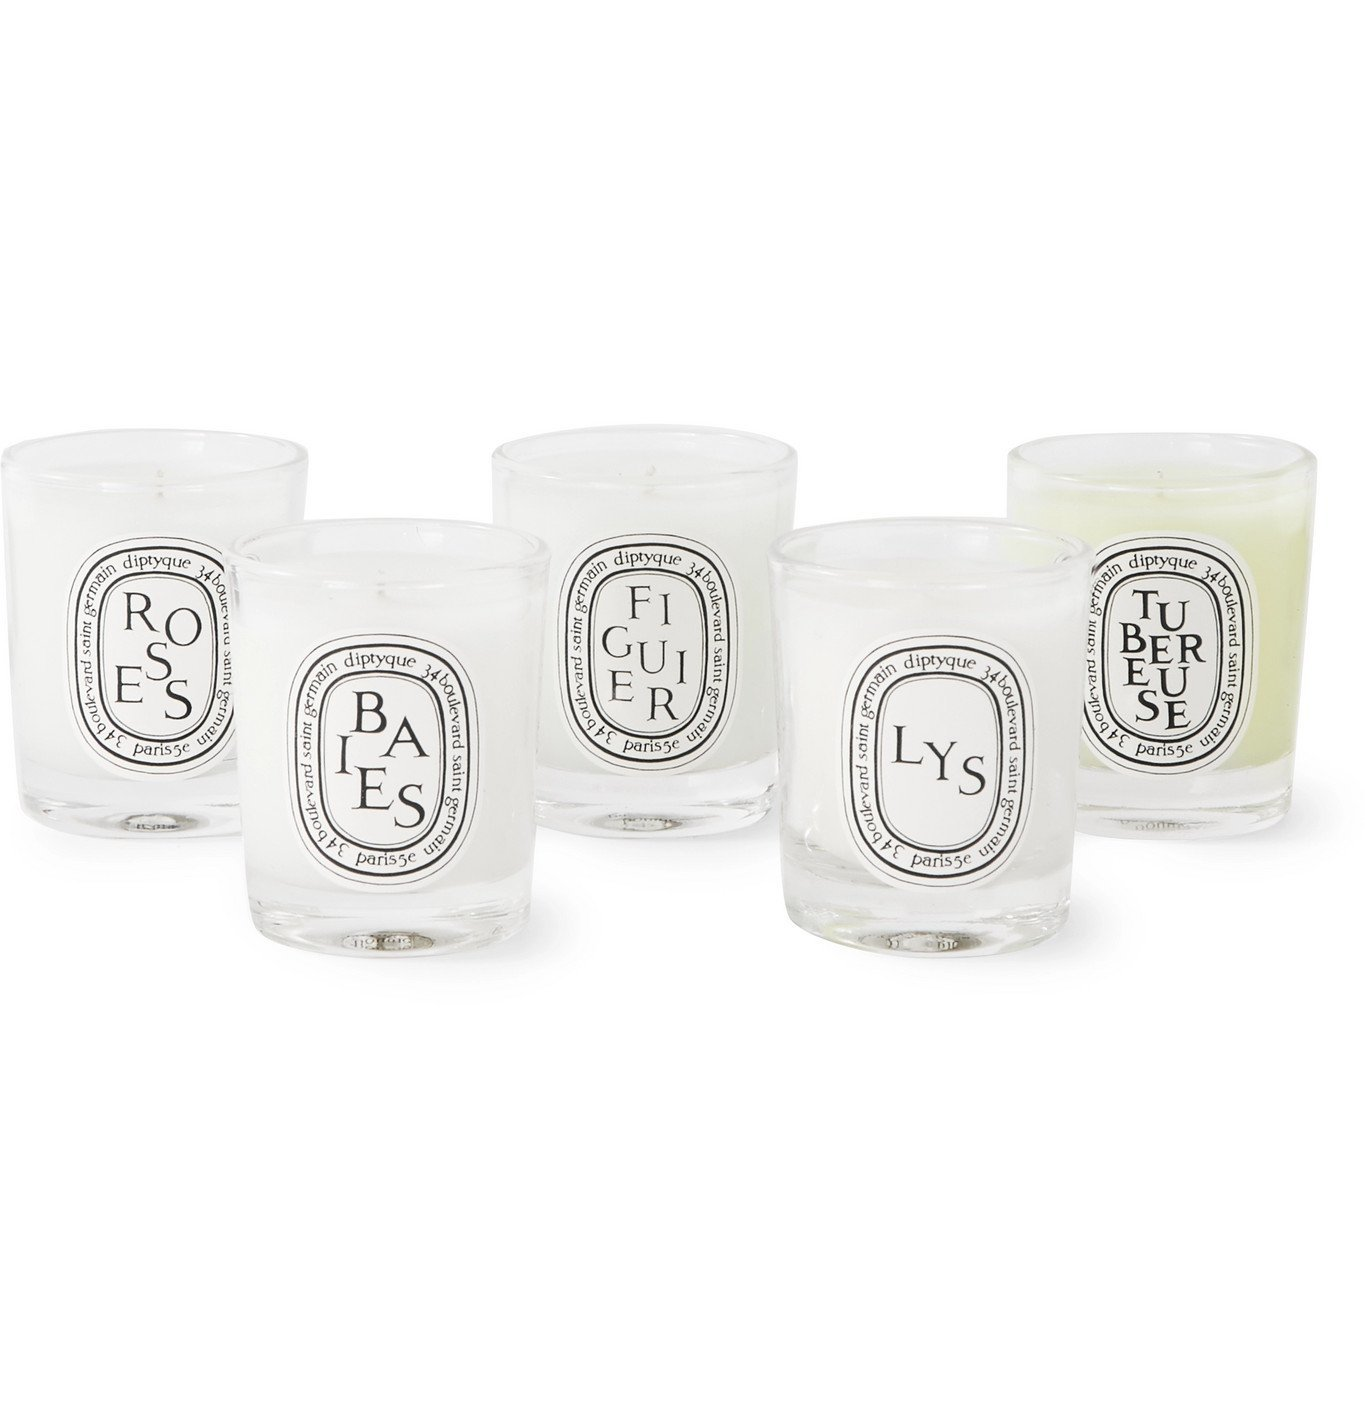 Diptyque   Miniature Scented Candle Set, 20 x 320g   Colorless Diptyque